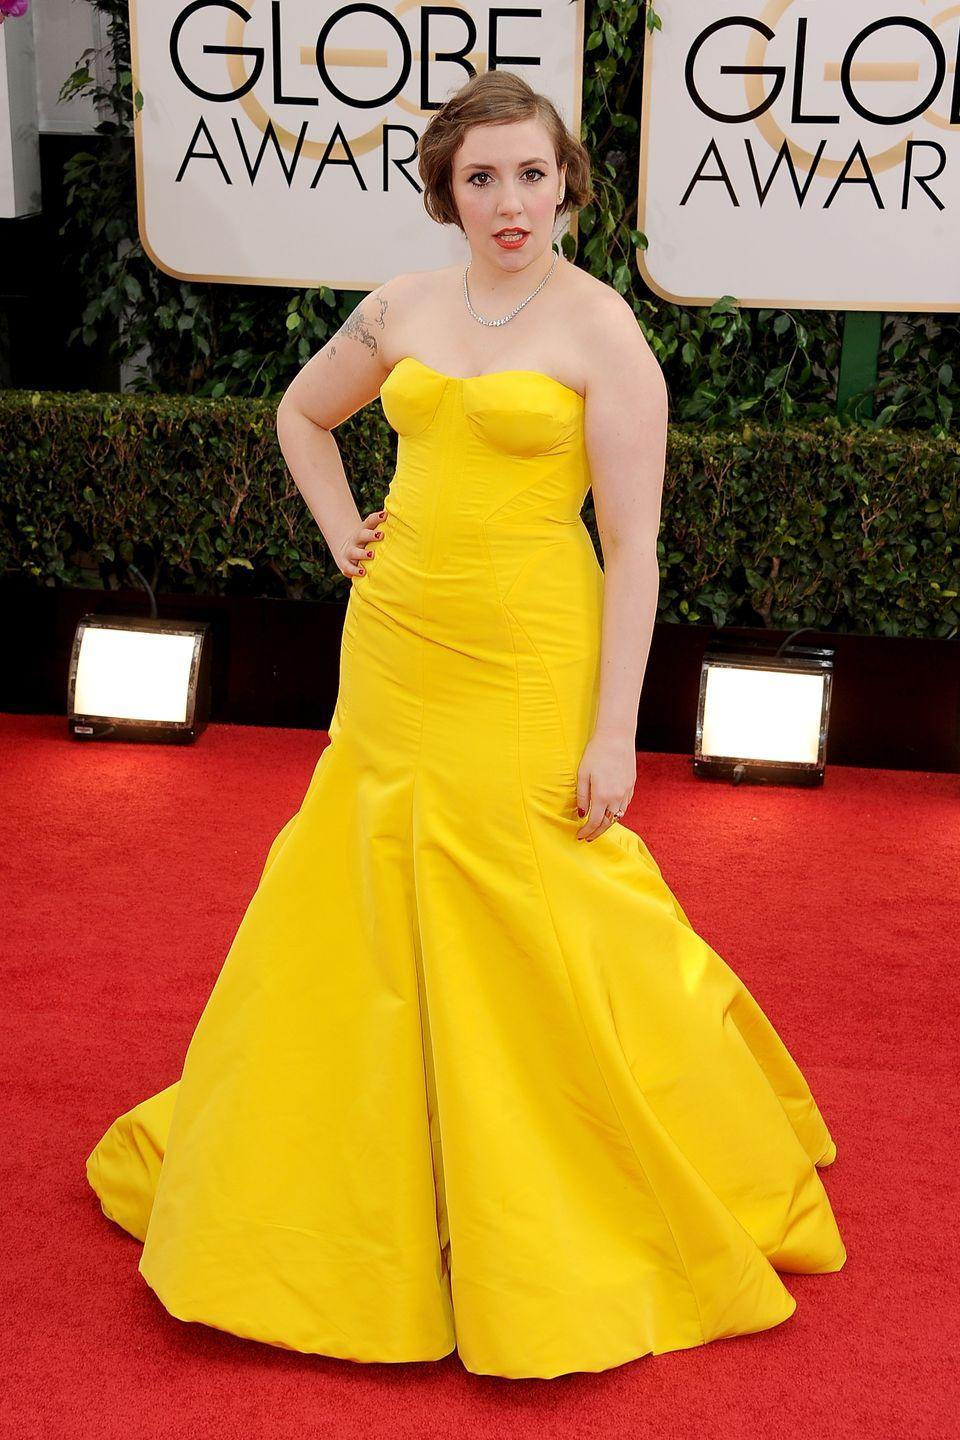 <p>Lena Dunham went for a Disney princess vibe at the 2014 Golden Globes in this bright-yellow dress designed by Zac Posen.</p>